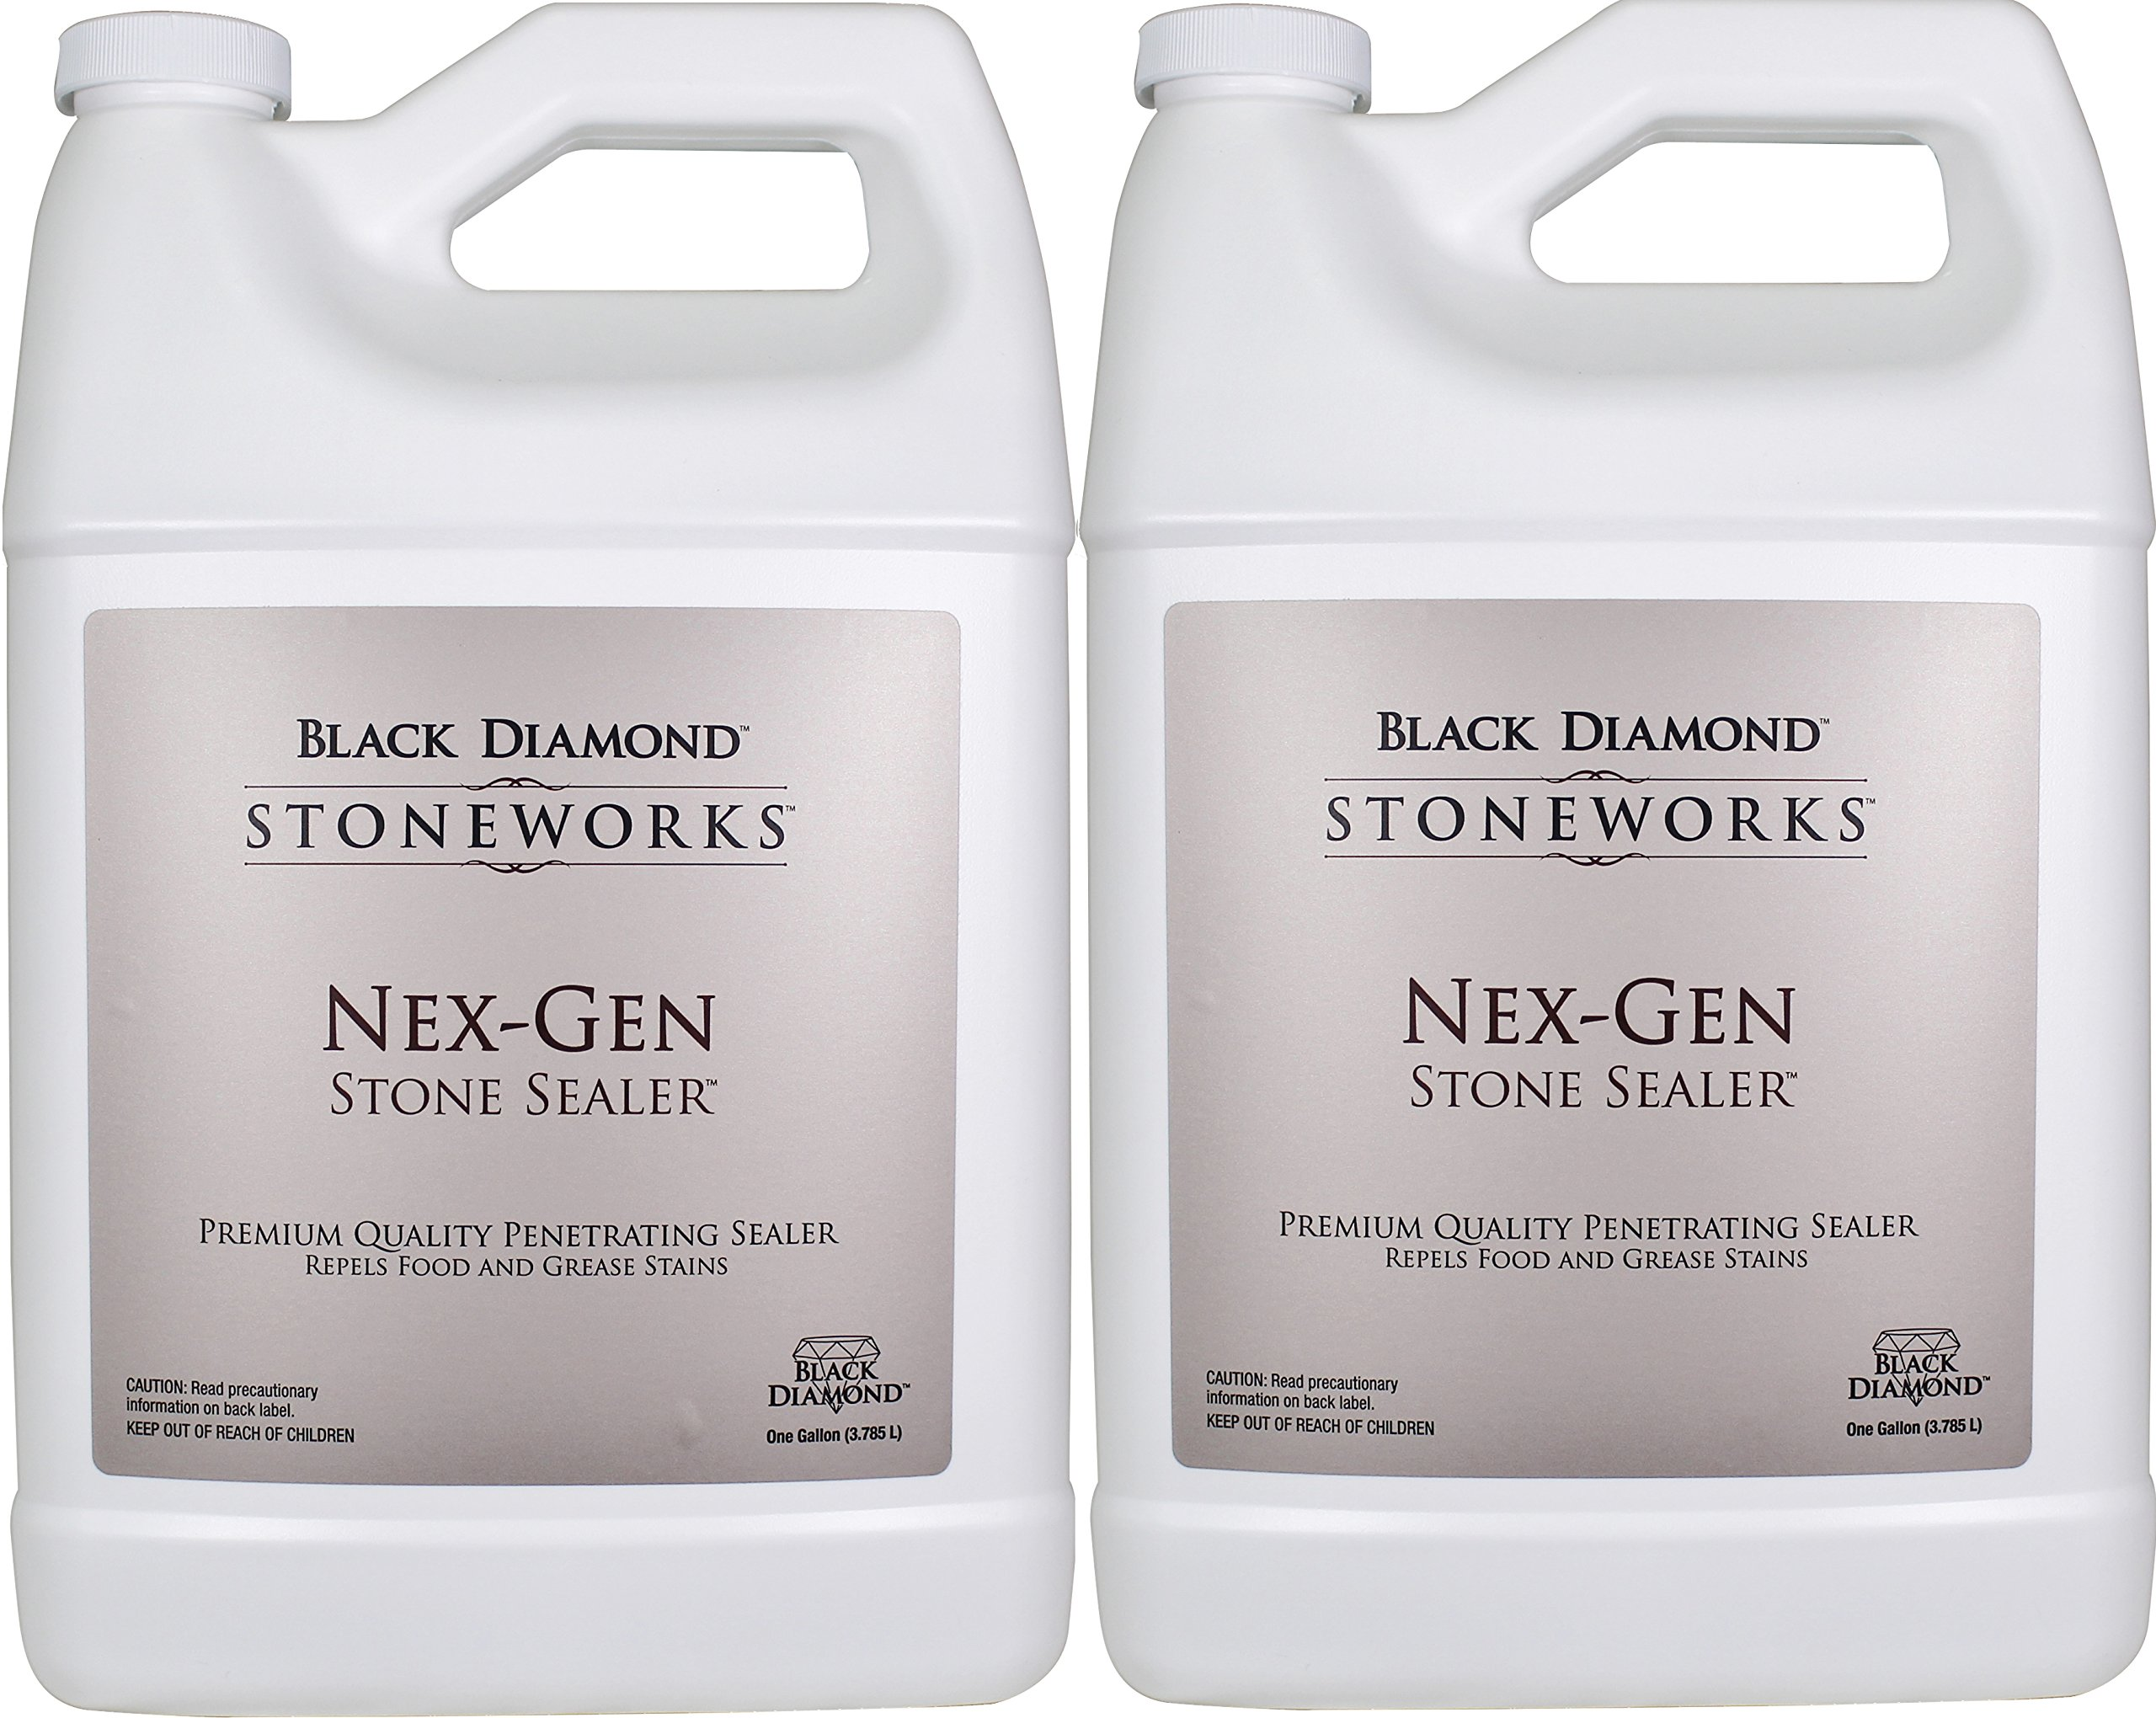 Black Diamond Nex-Gen Natural Stone Penetrating Sealer: Seals & Protects; Granite, Marble, Travertine, Limestone, Concrete, Grout, Tile, Brick, Block & Slate Floors, Patios and Fireplaces. 2-Gallons. by Black Diamond Stoneworks (Image #1)